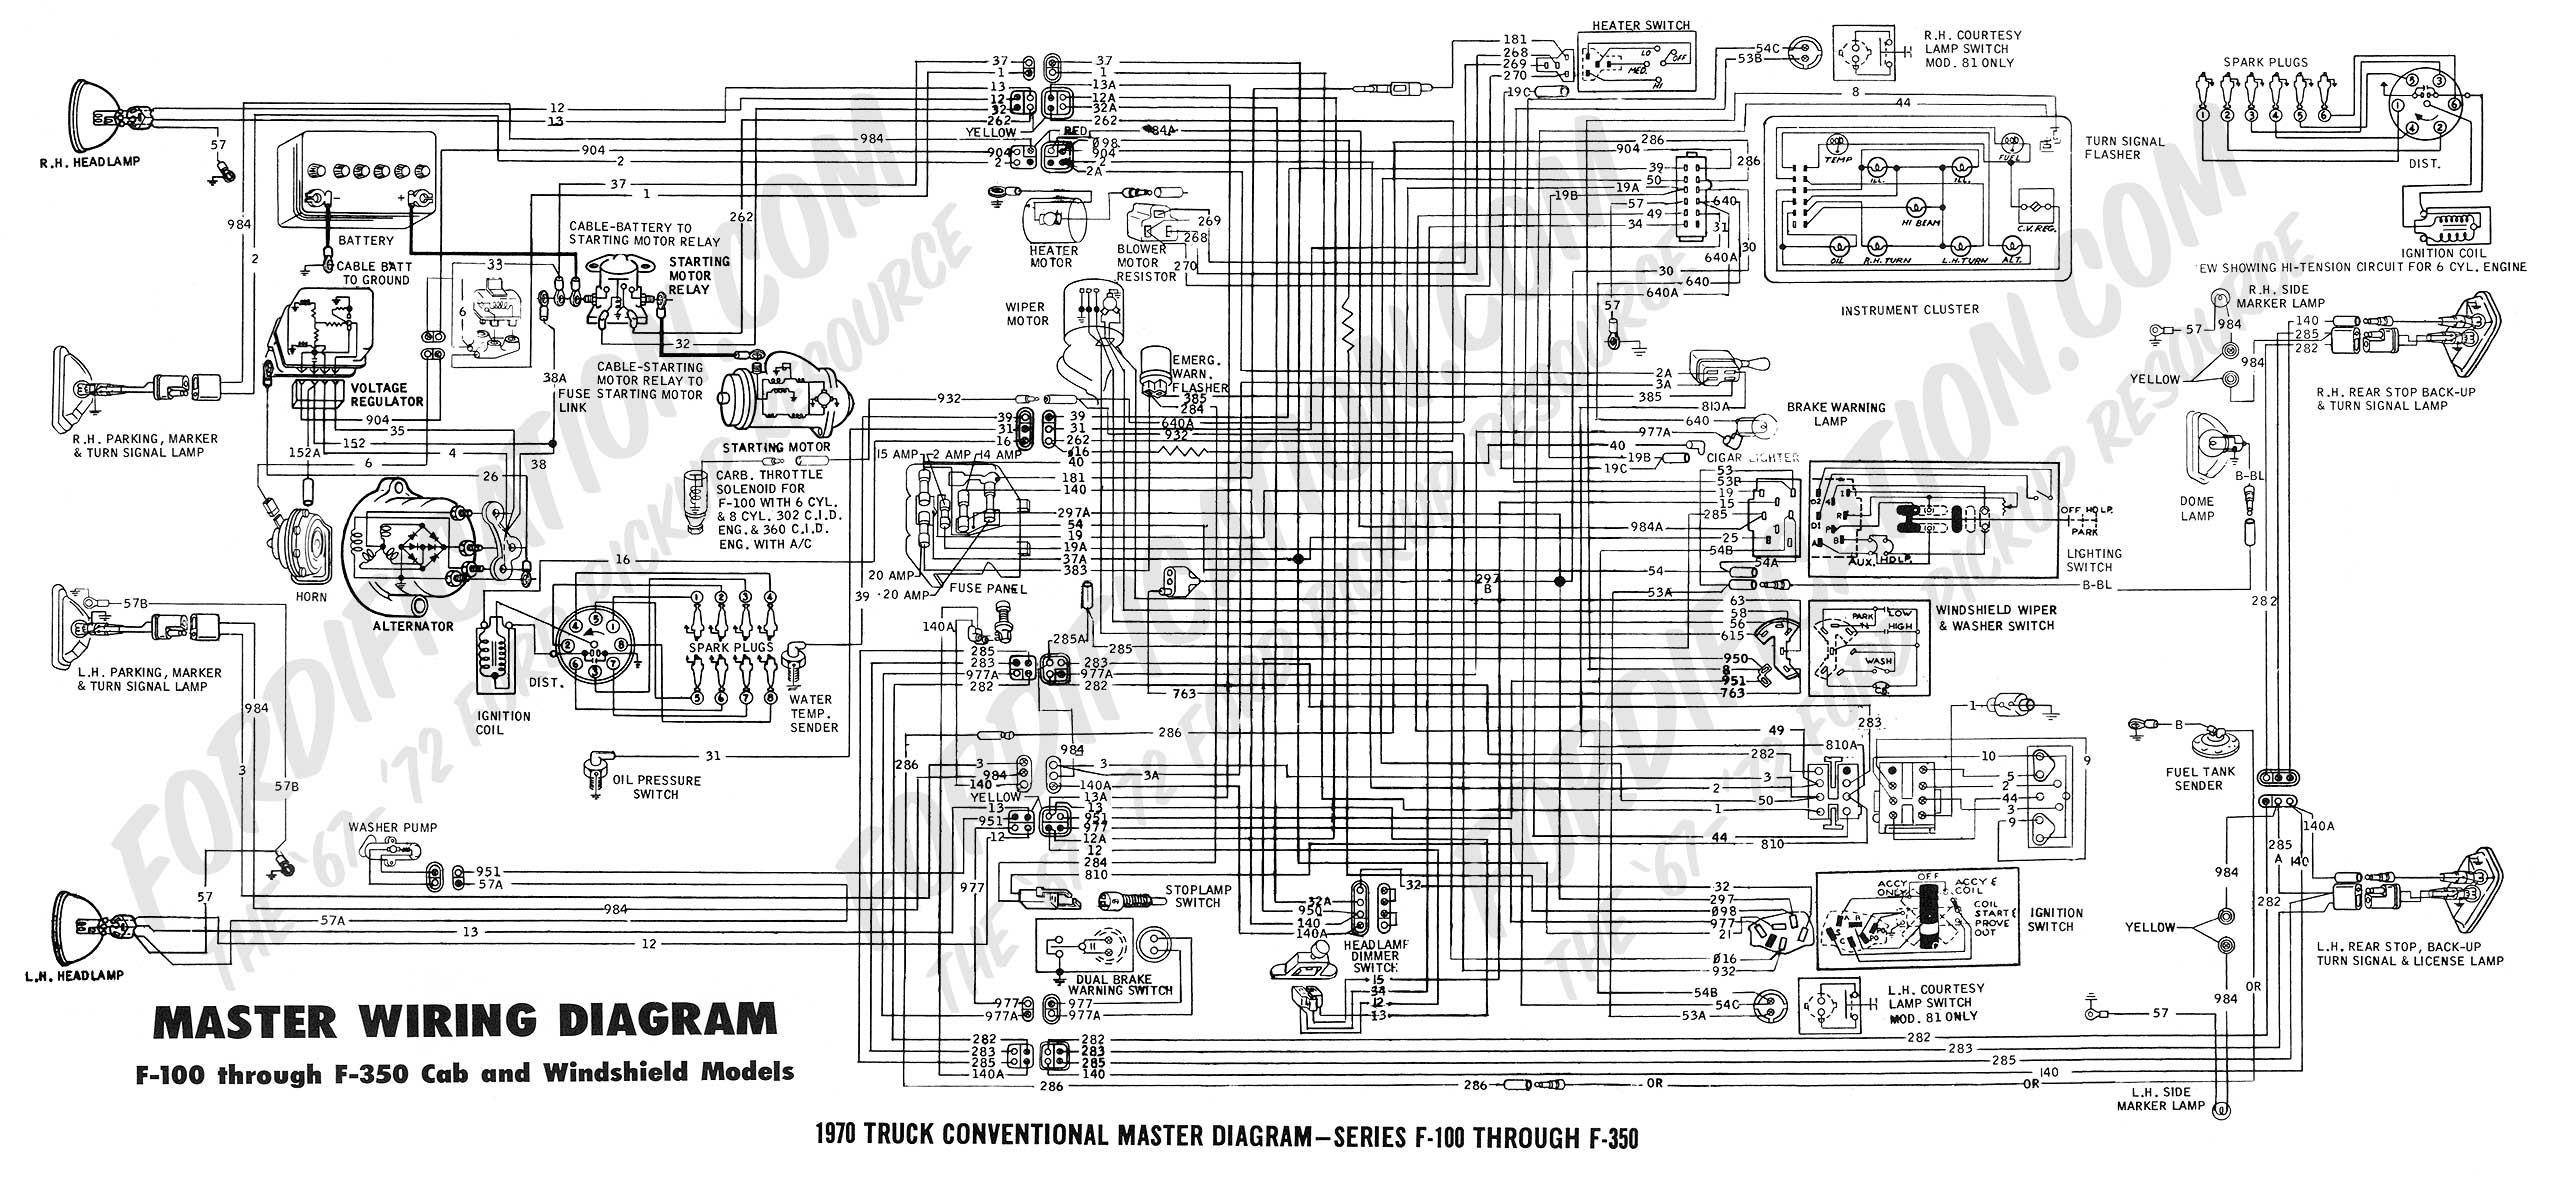 wiring diagram 70_master f450 wiring diagram f250 wiring diagram 2016 \u2022 wiring diagrams j 2000 ford expedition starter wiring diagram at soozxer.org